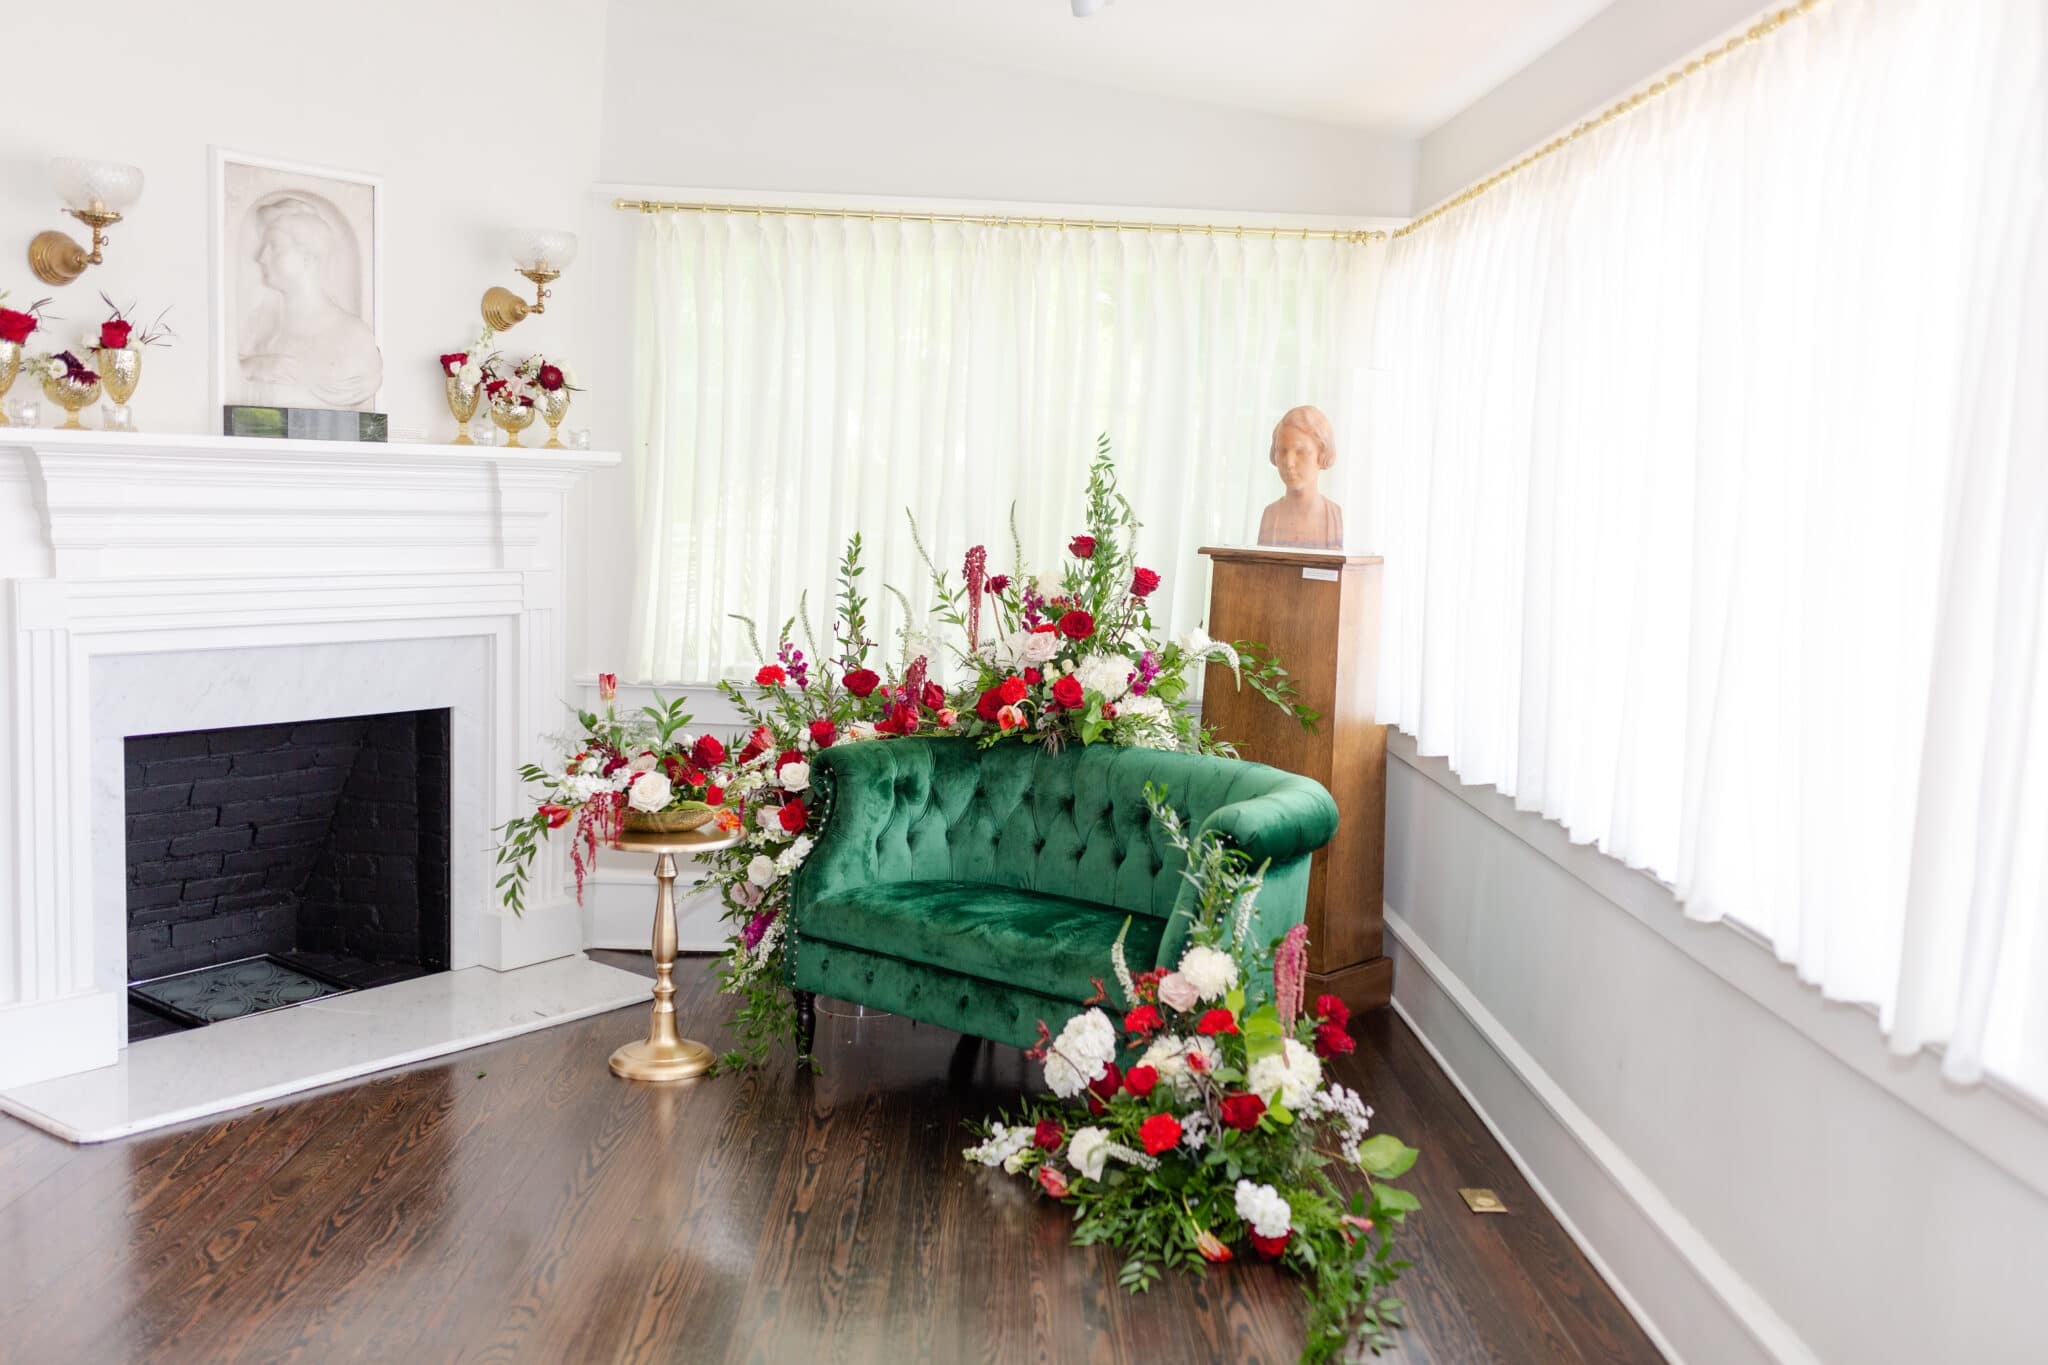 an emerald green love seat staged in the corner surrounded by red, green, and white florals with a gold side table for the christmas themed wedding inspiration shoot